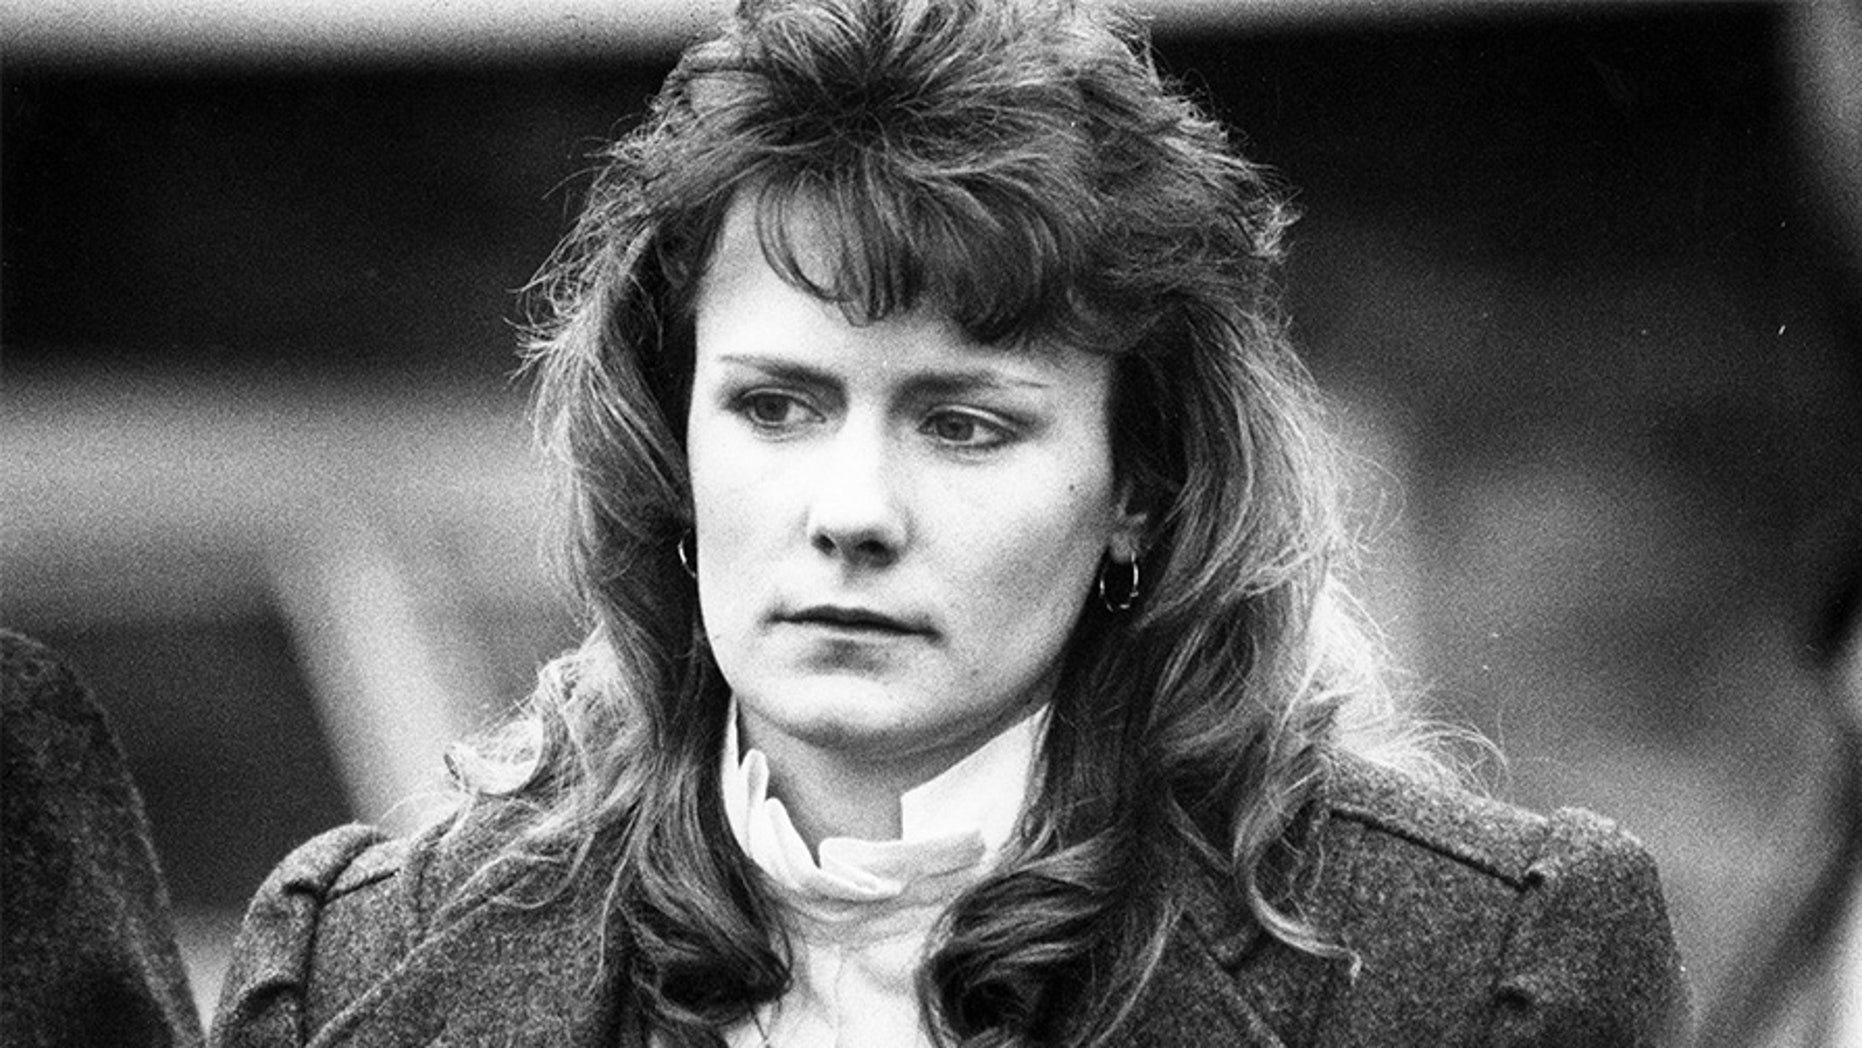 Pamela Smart is the subject of a new docu-series on Investigation Discovery.